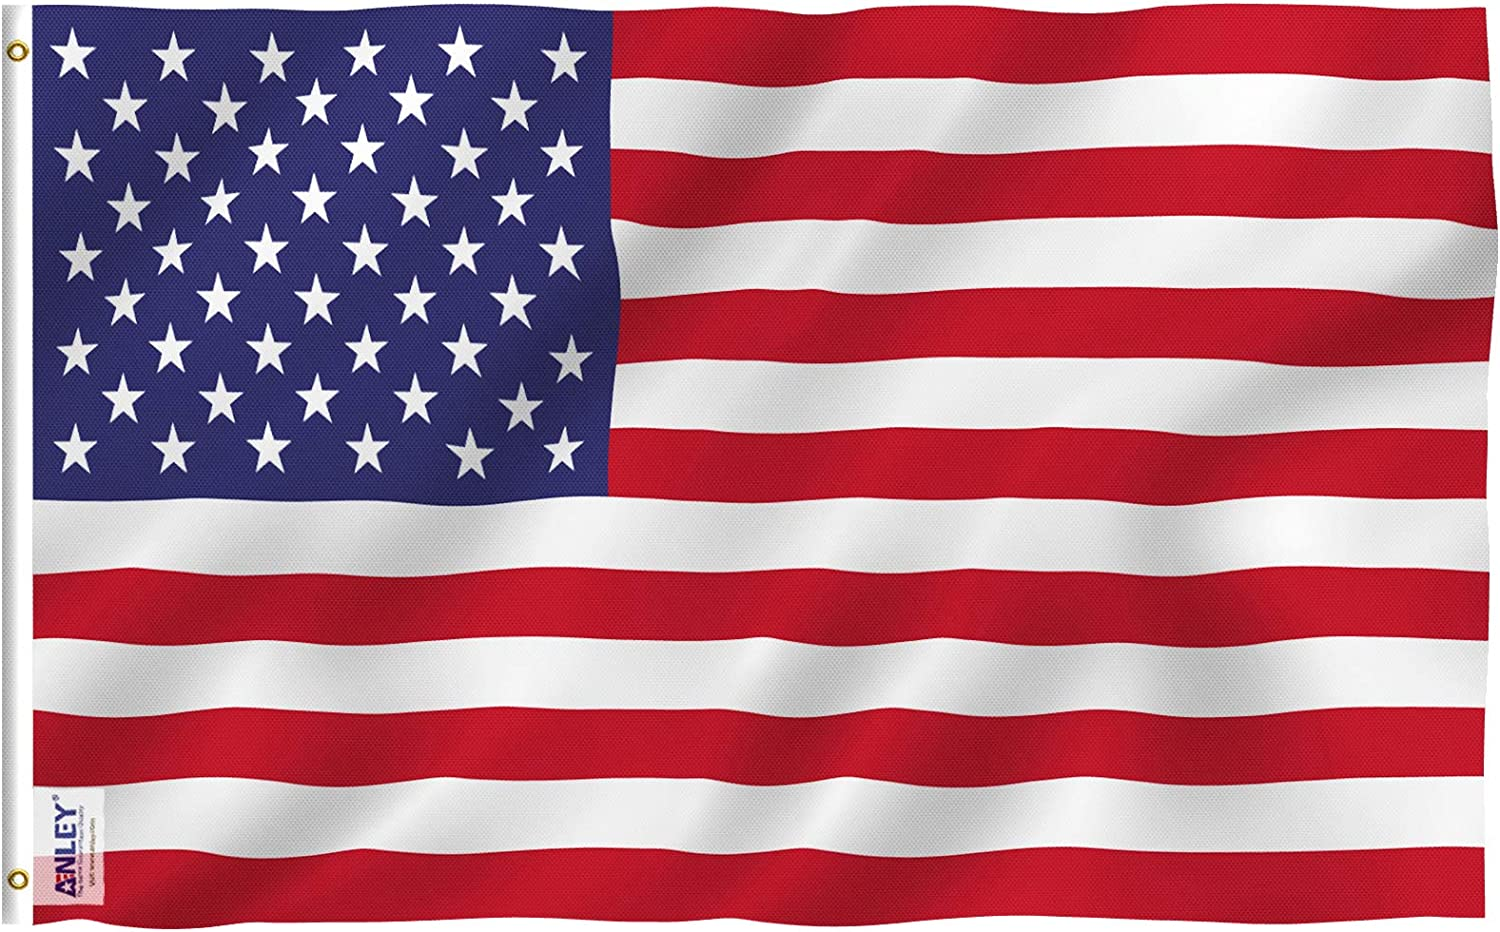 Anley Fly Breeze 3x5 Foot American US Regular discount Color High quality new UV Vivid Flag and -